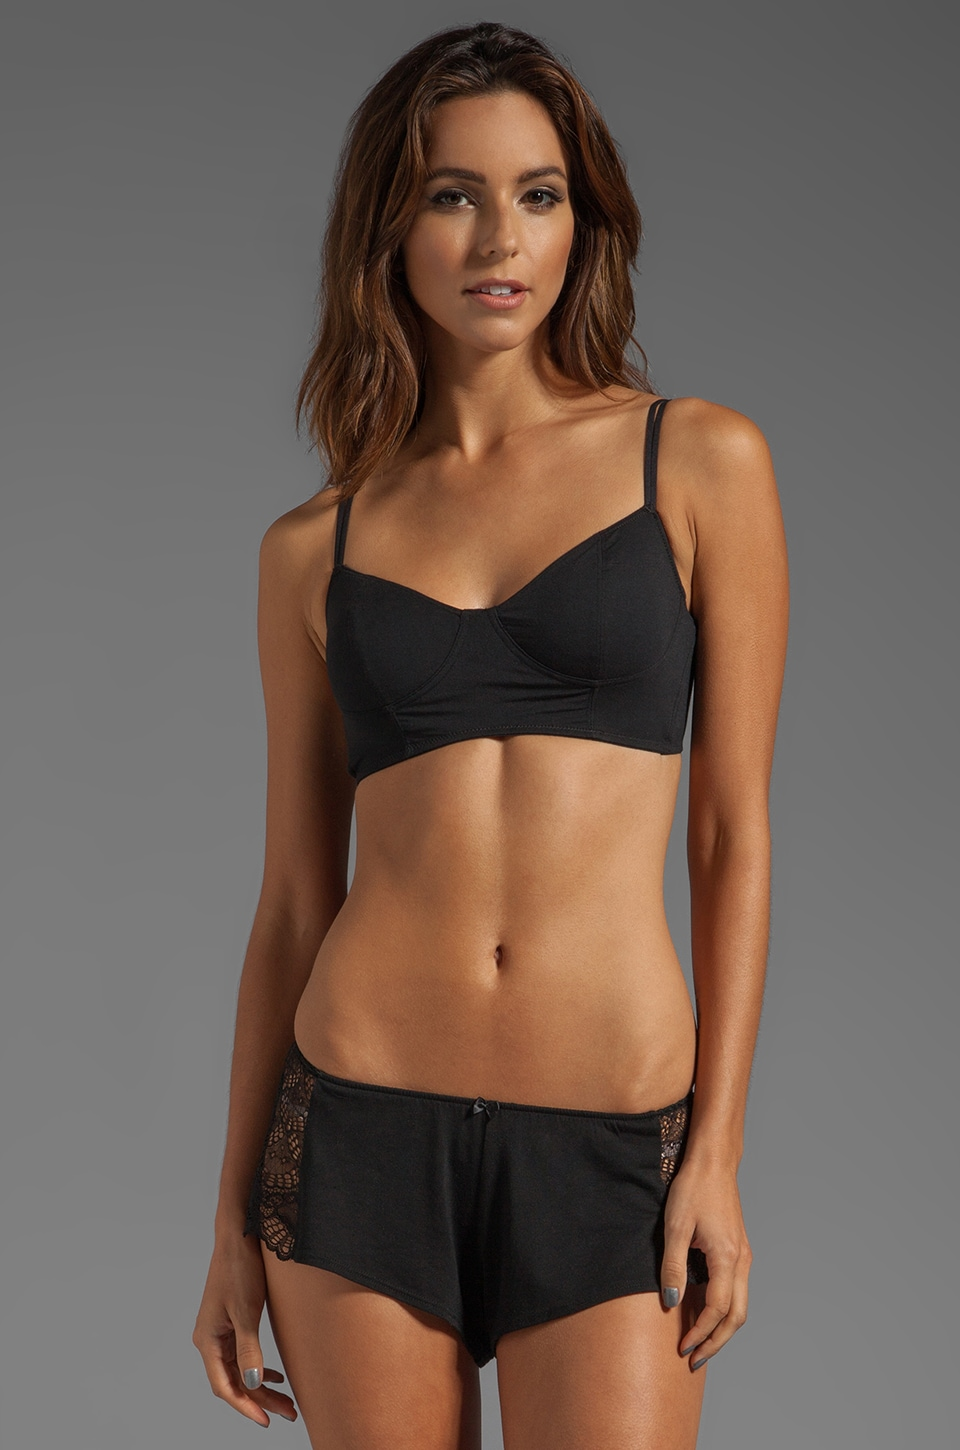 Splendid Longline Soft Cup Bra in Black